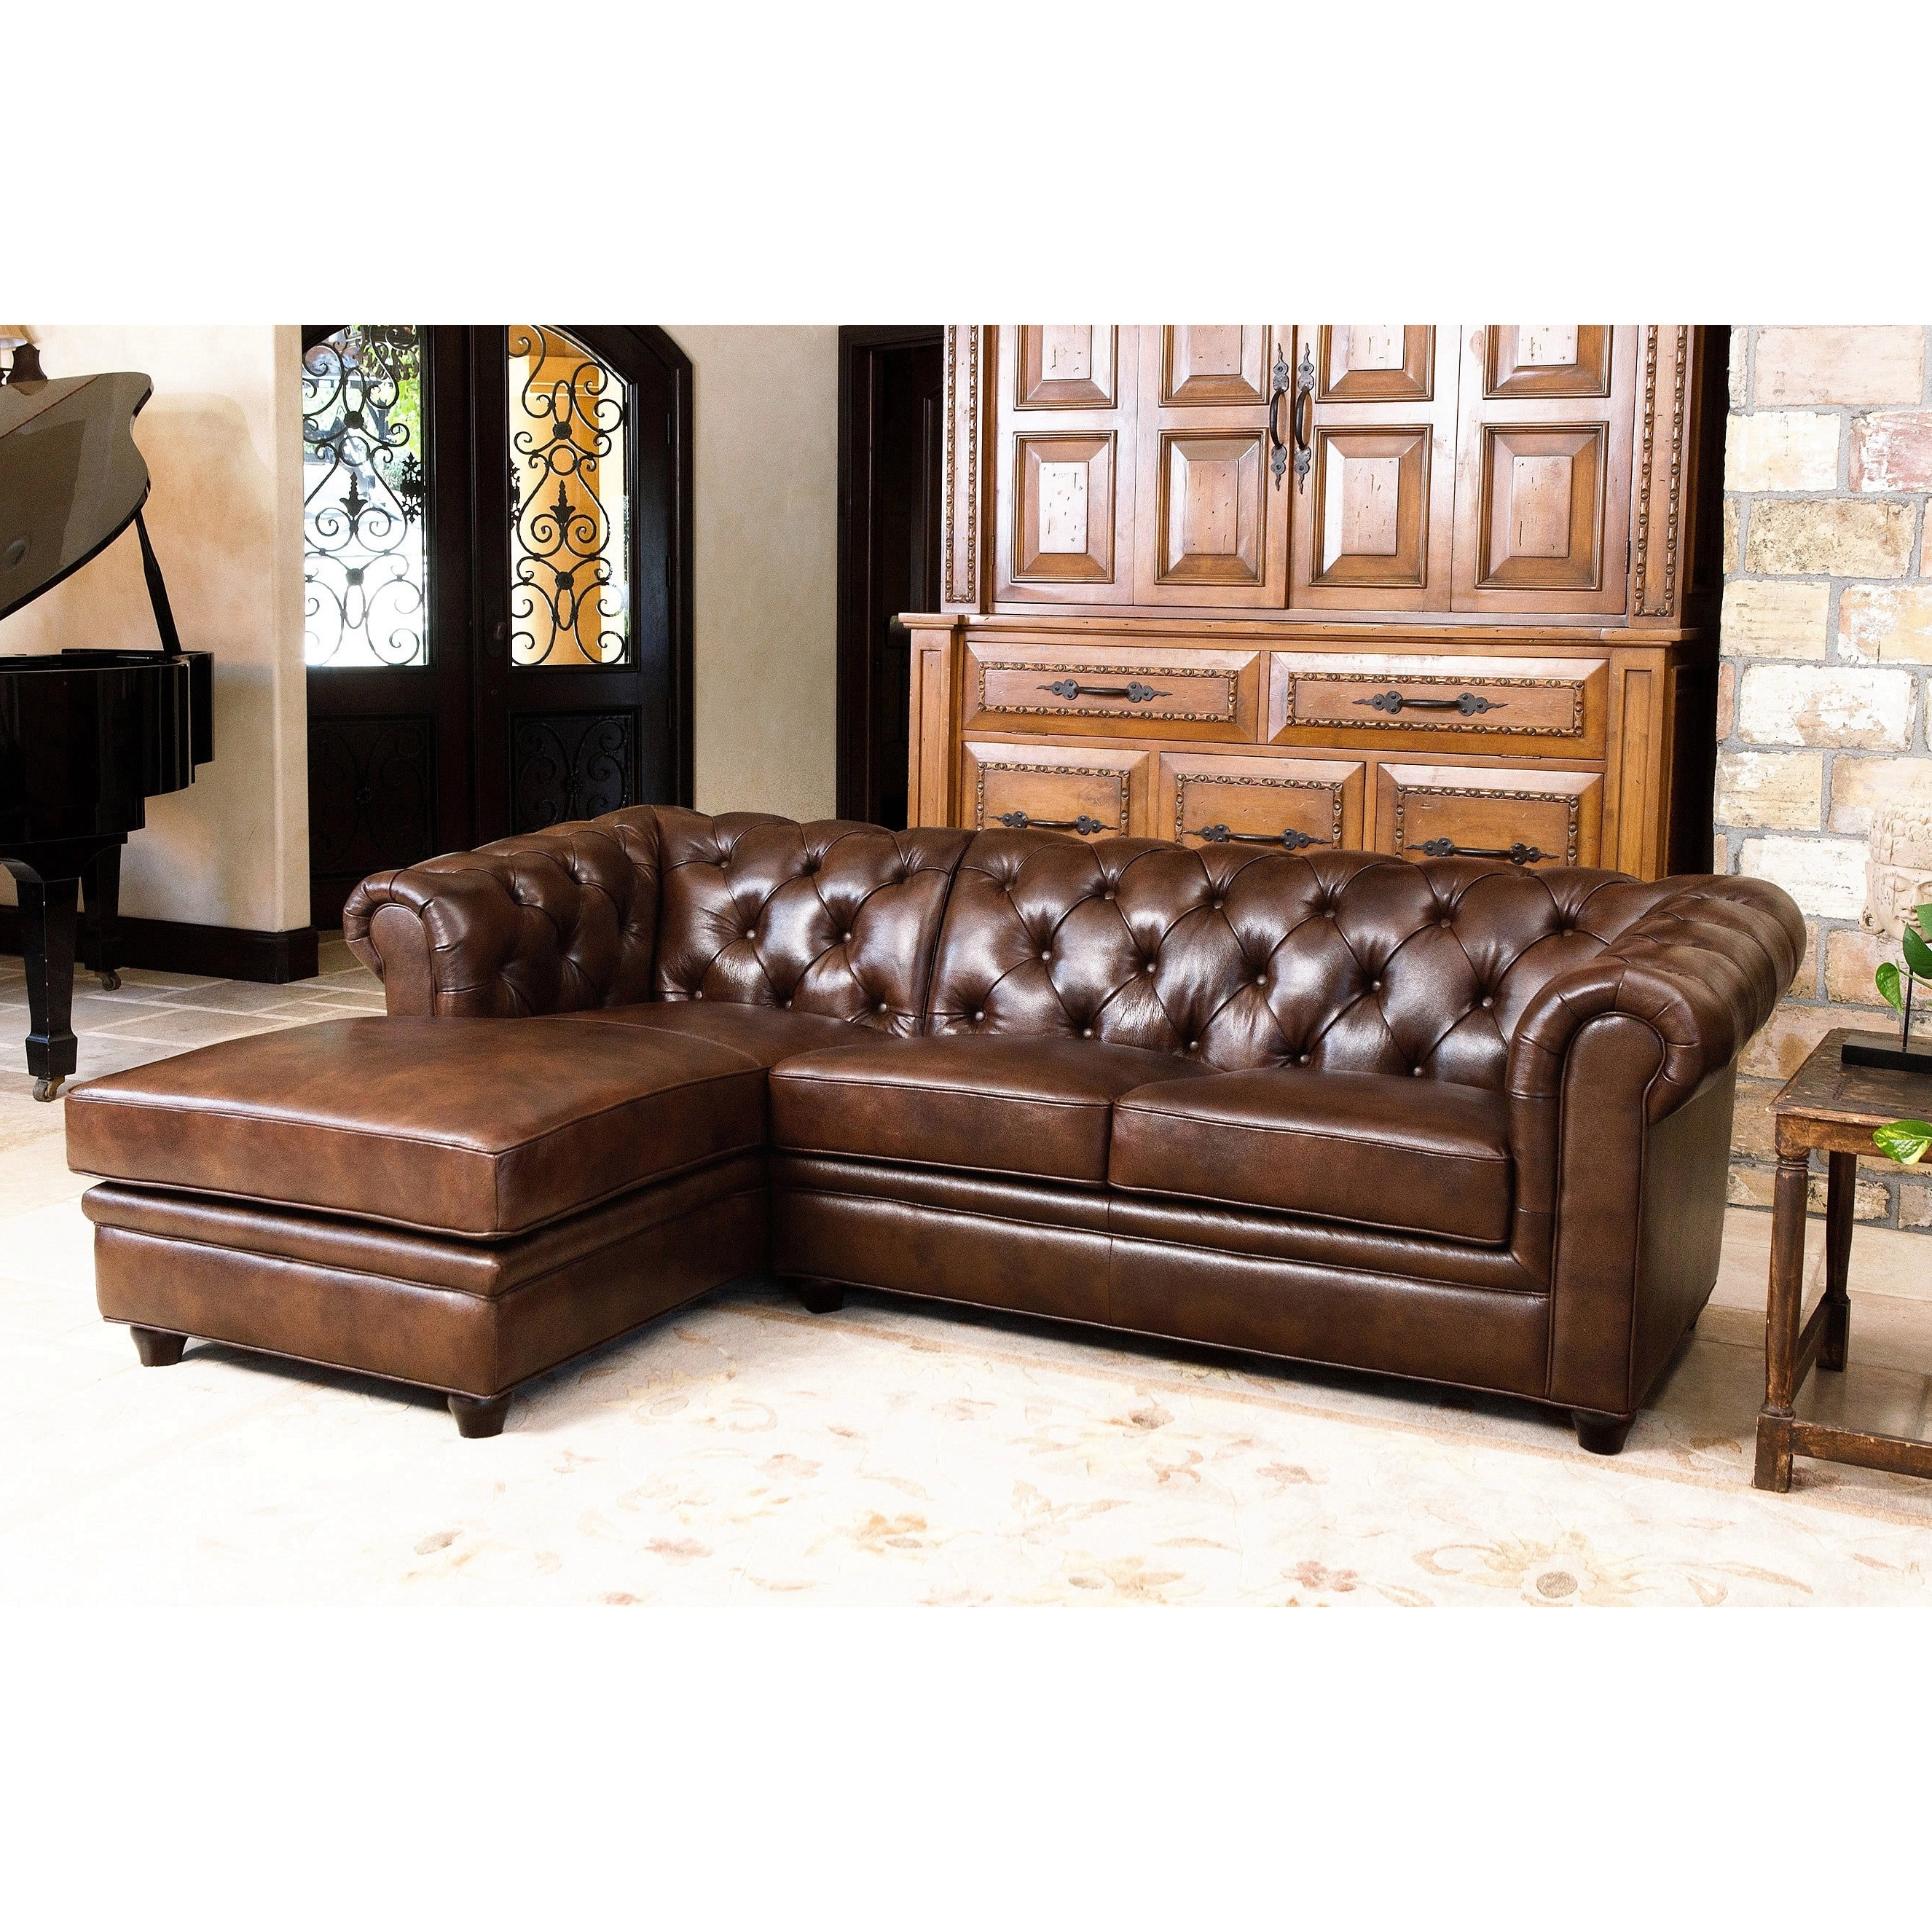 Trendy Abbyson Tuscan Tufted Top Grain Leather Chaise Sectional – Free Pertaining To Leather Chaise Sectionals (View 9 of 15)